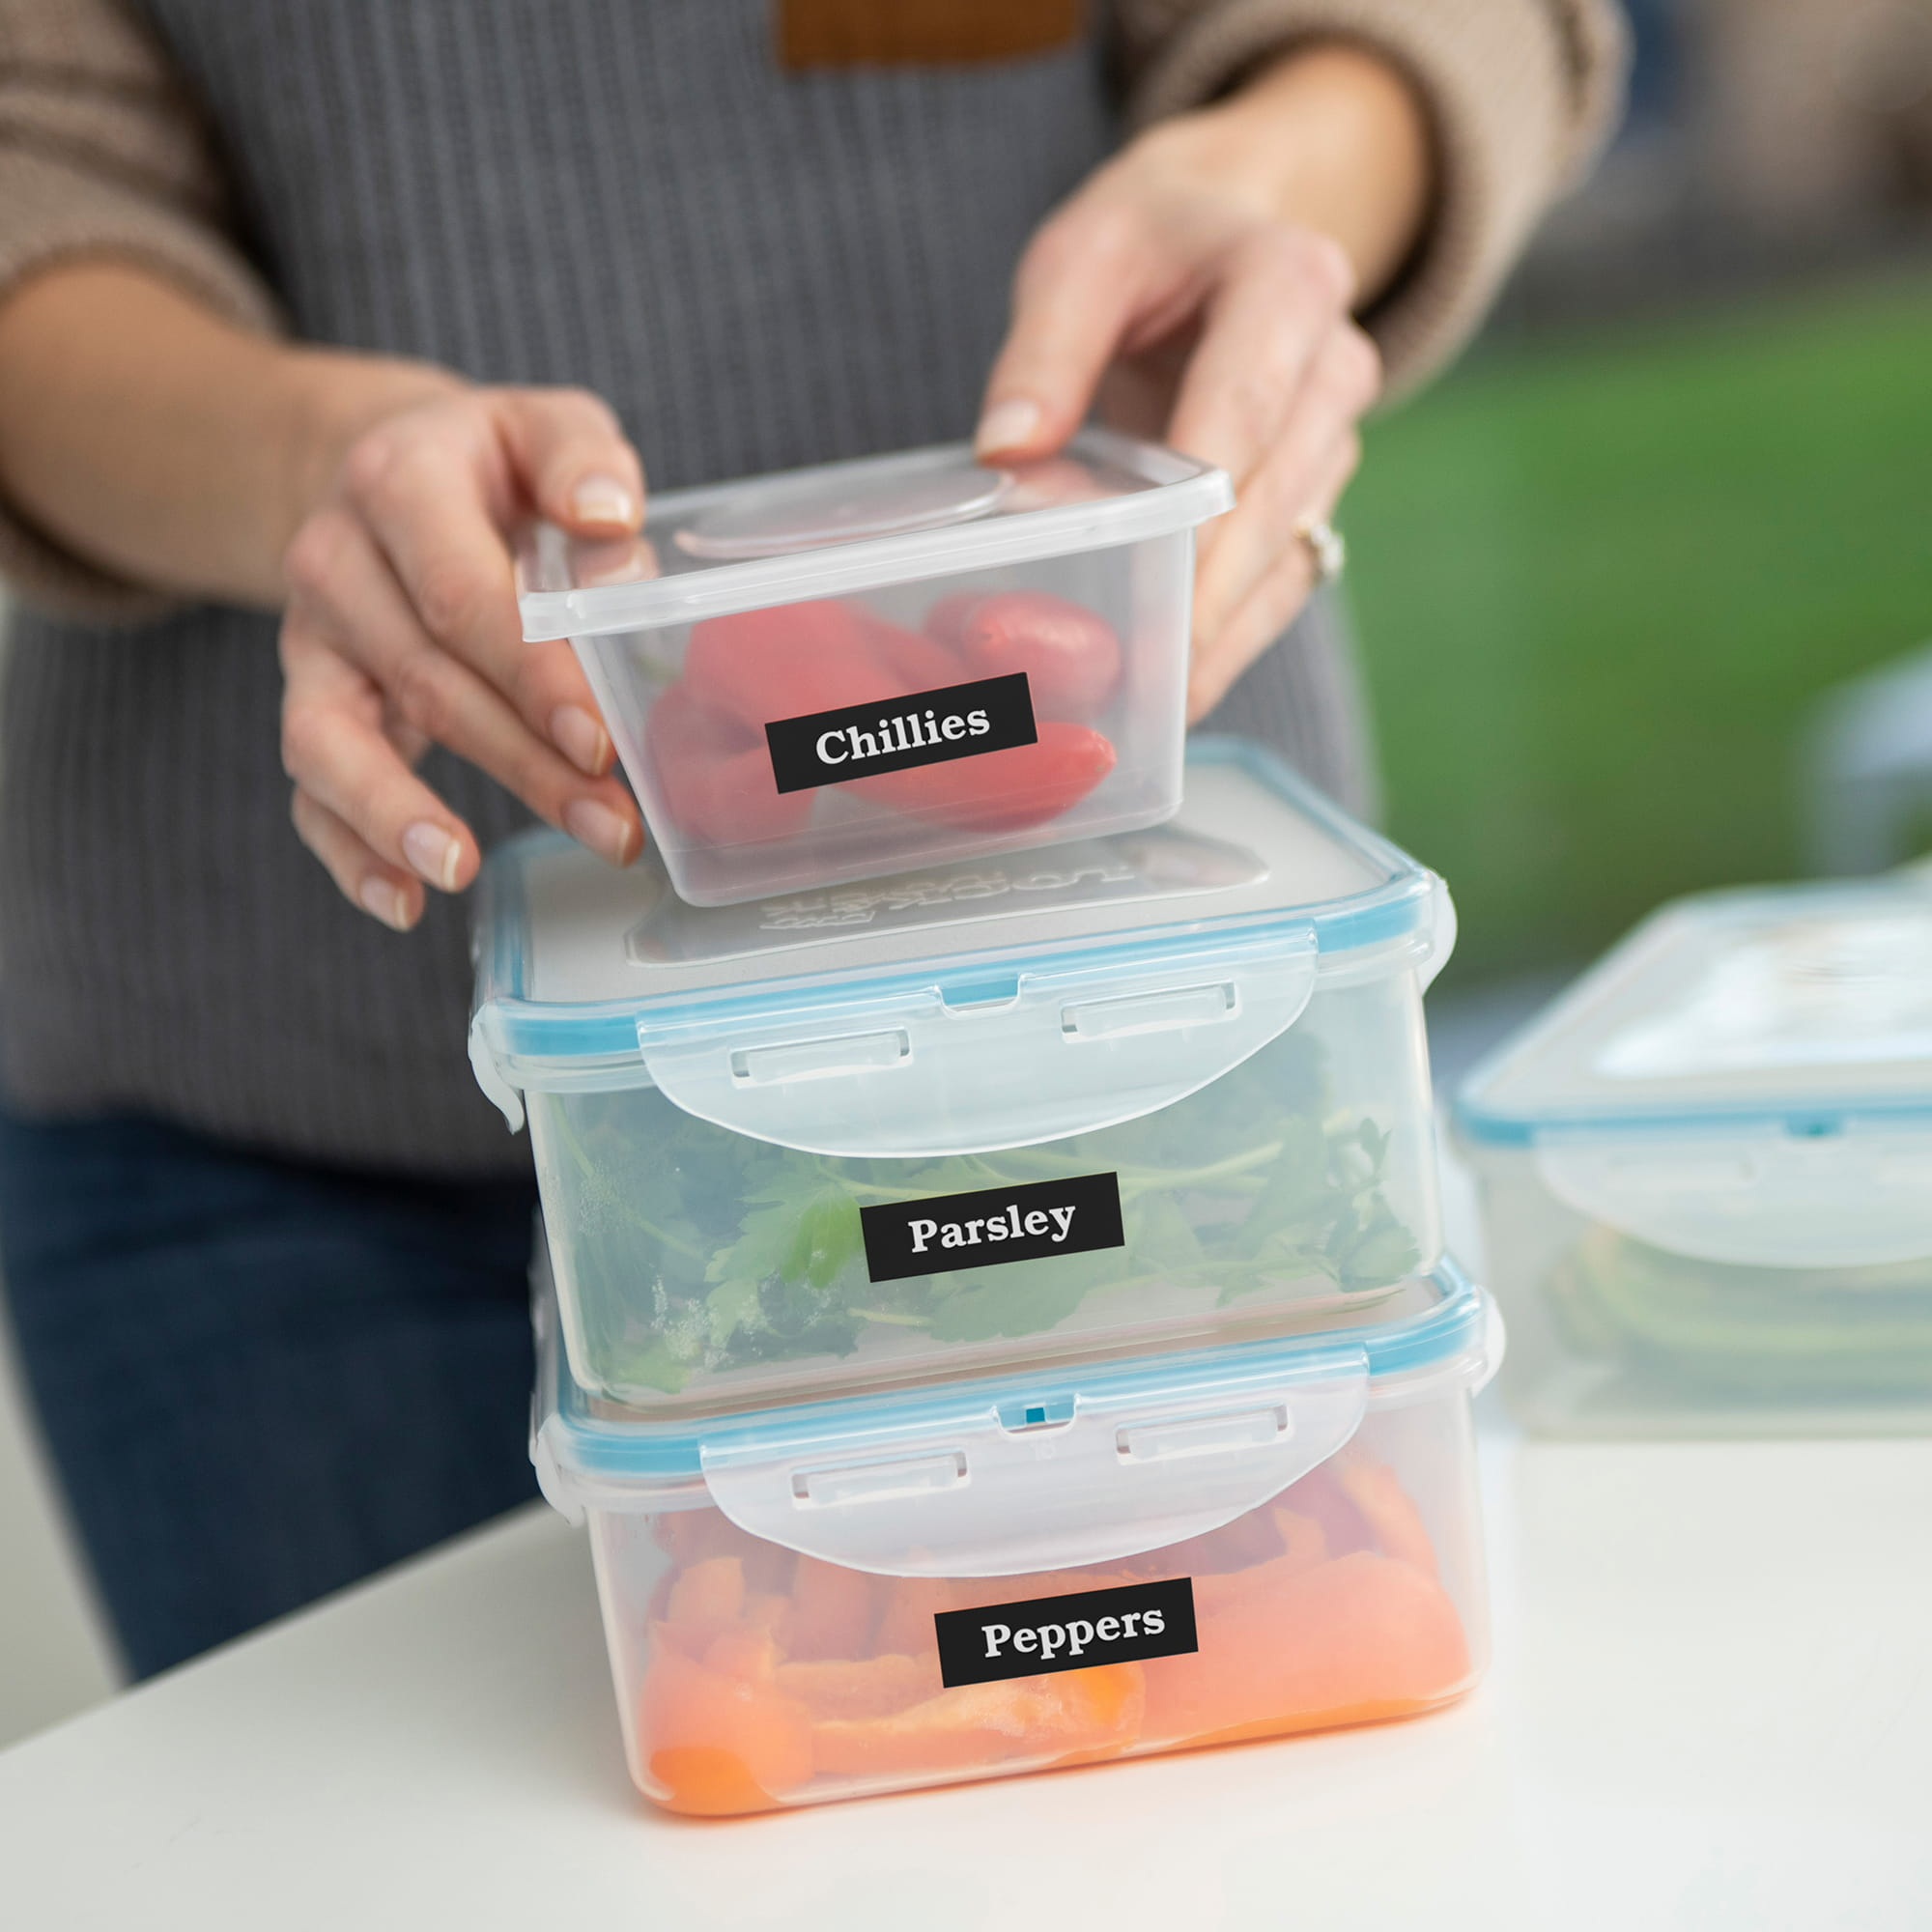 Home Application 04 - Label_Food_Containers